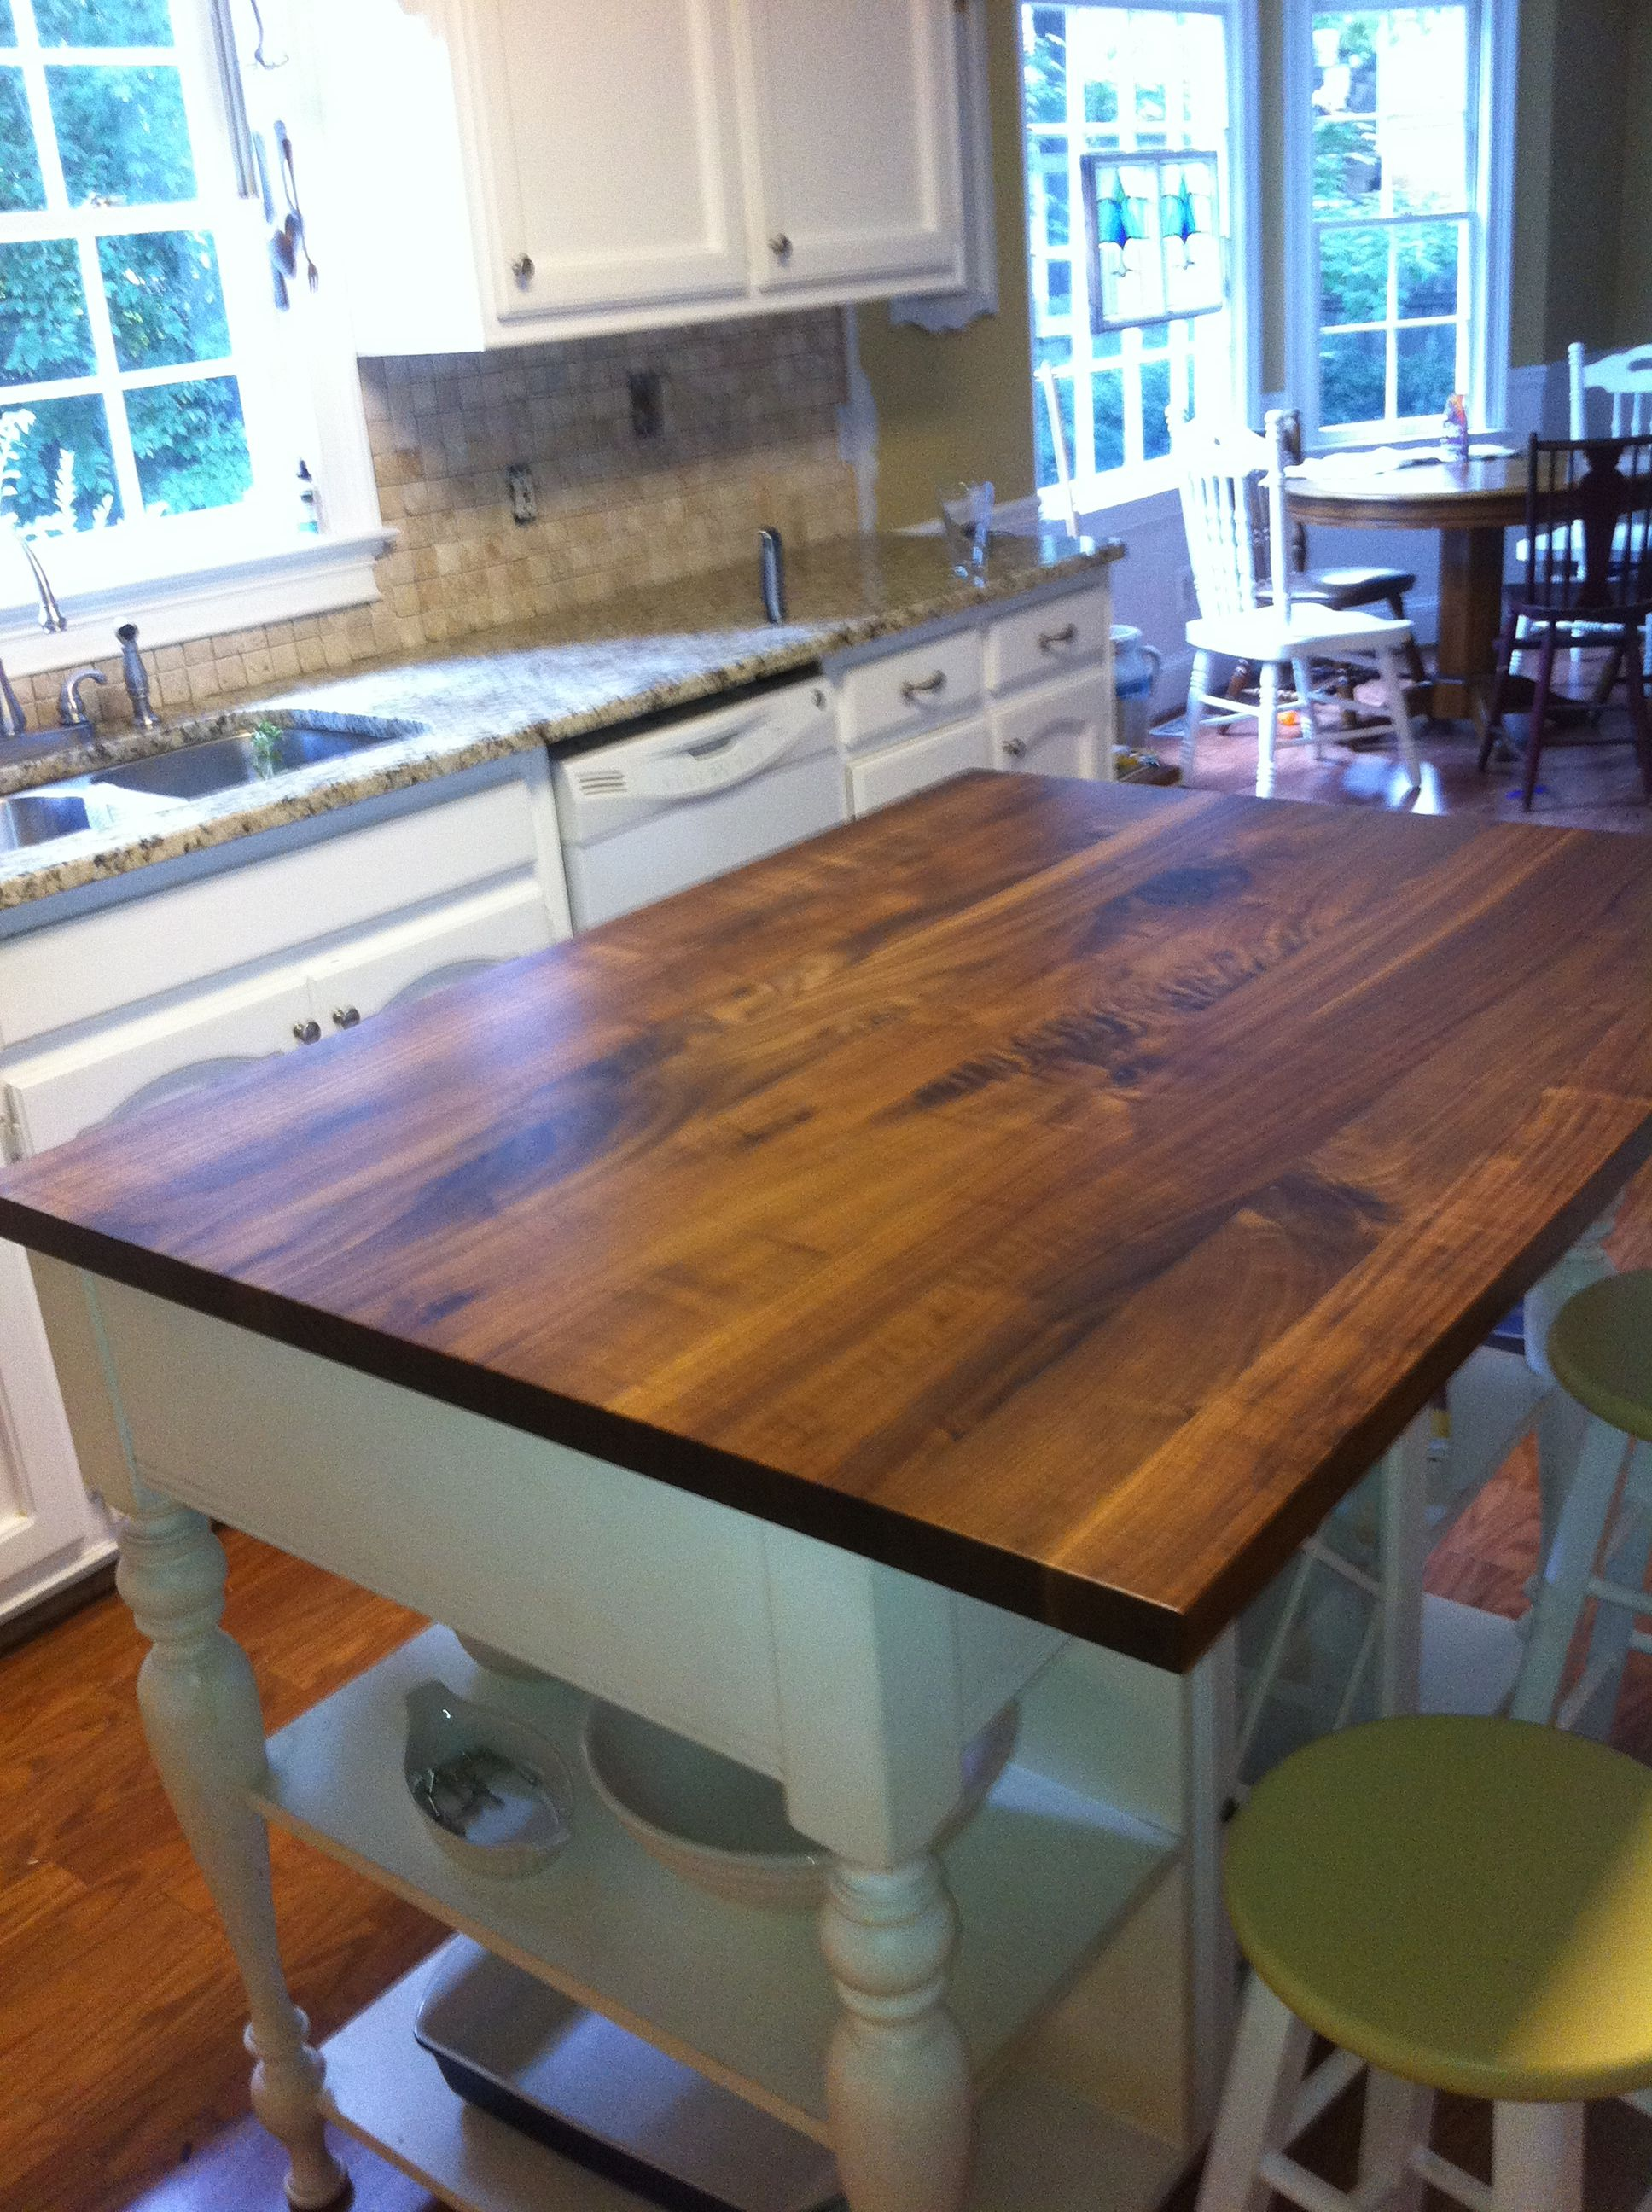 Pin By Tegan Ambrose On For The Home Wood Countertops Rustic Countertops Wooden Countertops Kitchen